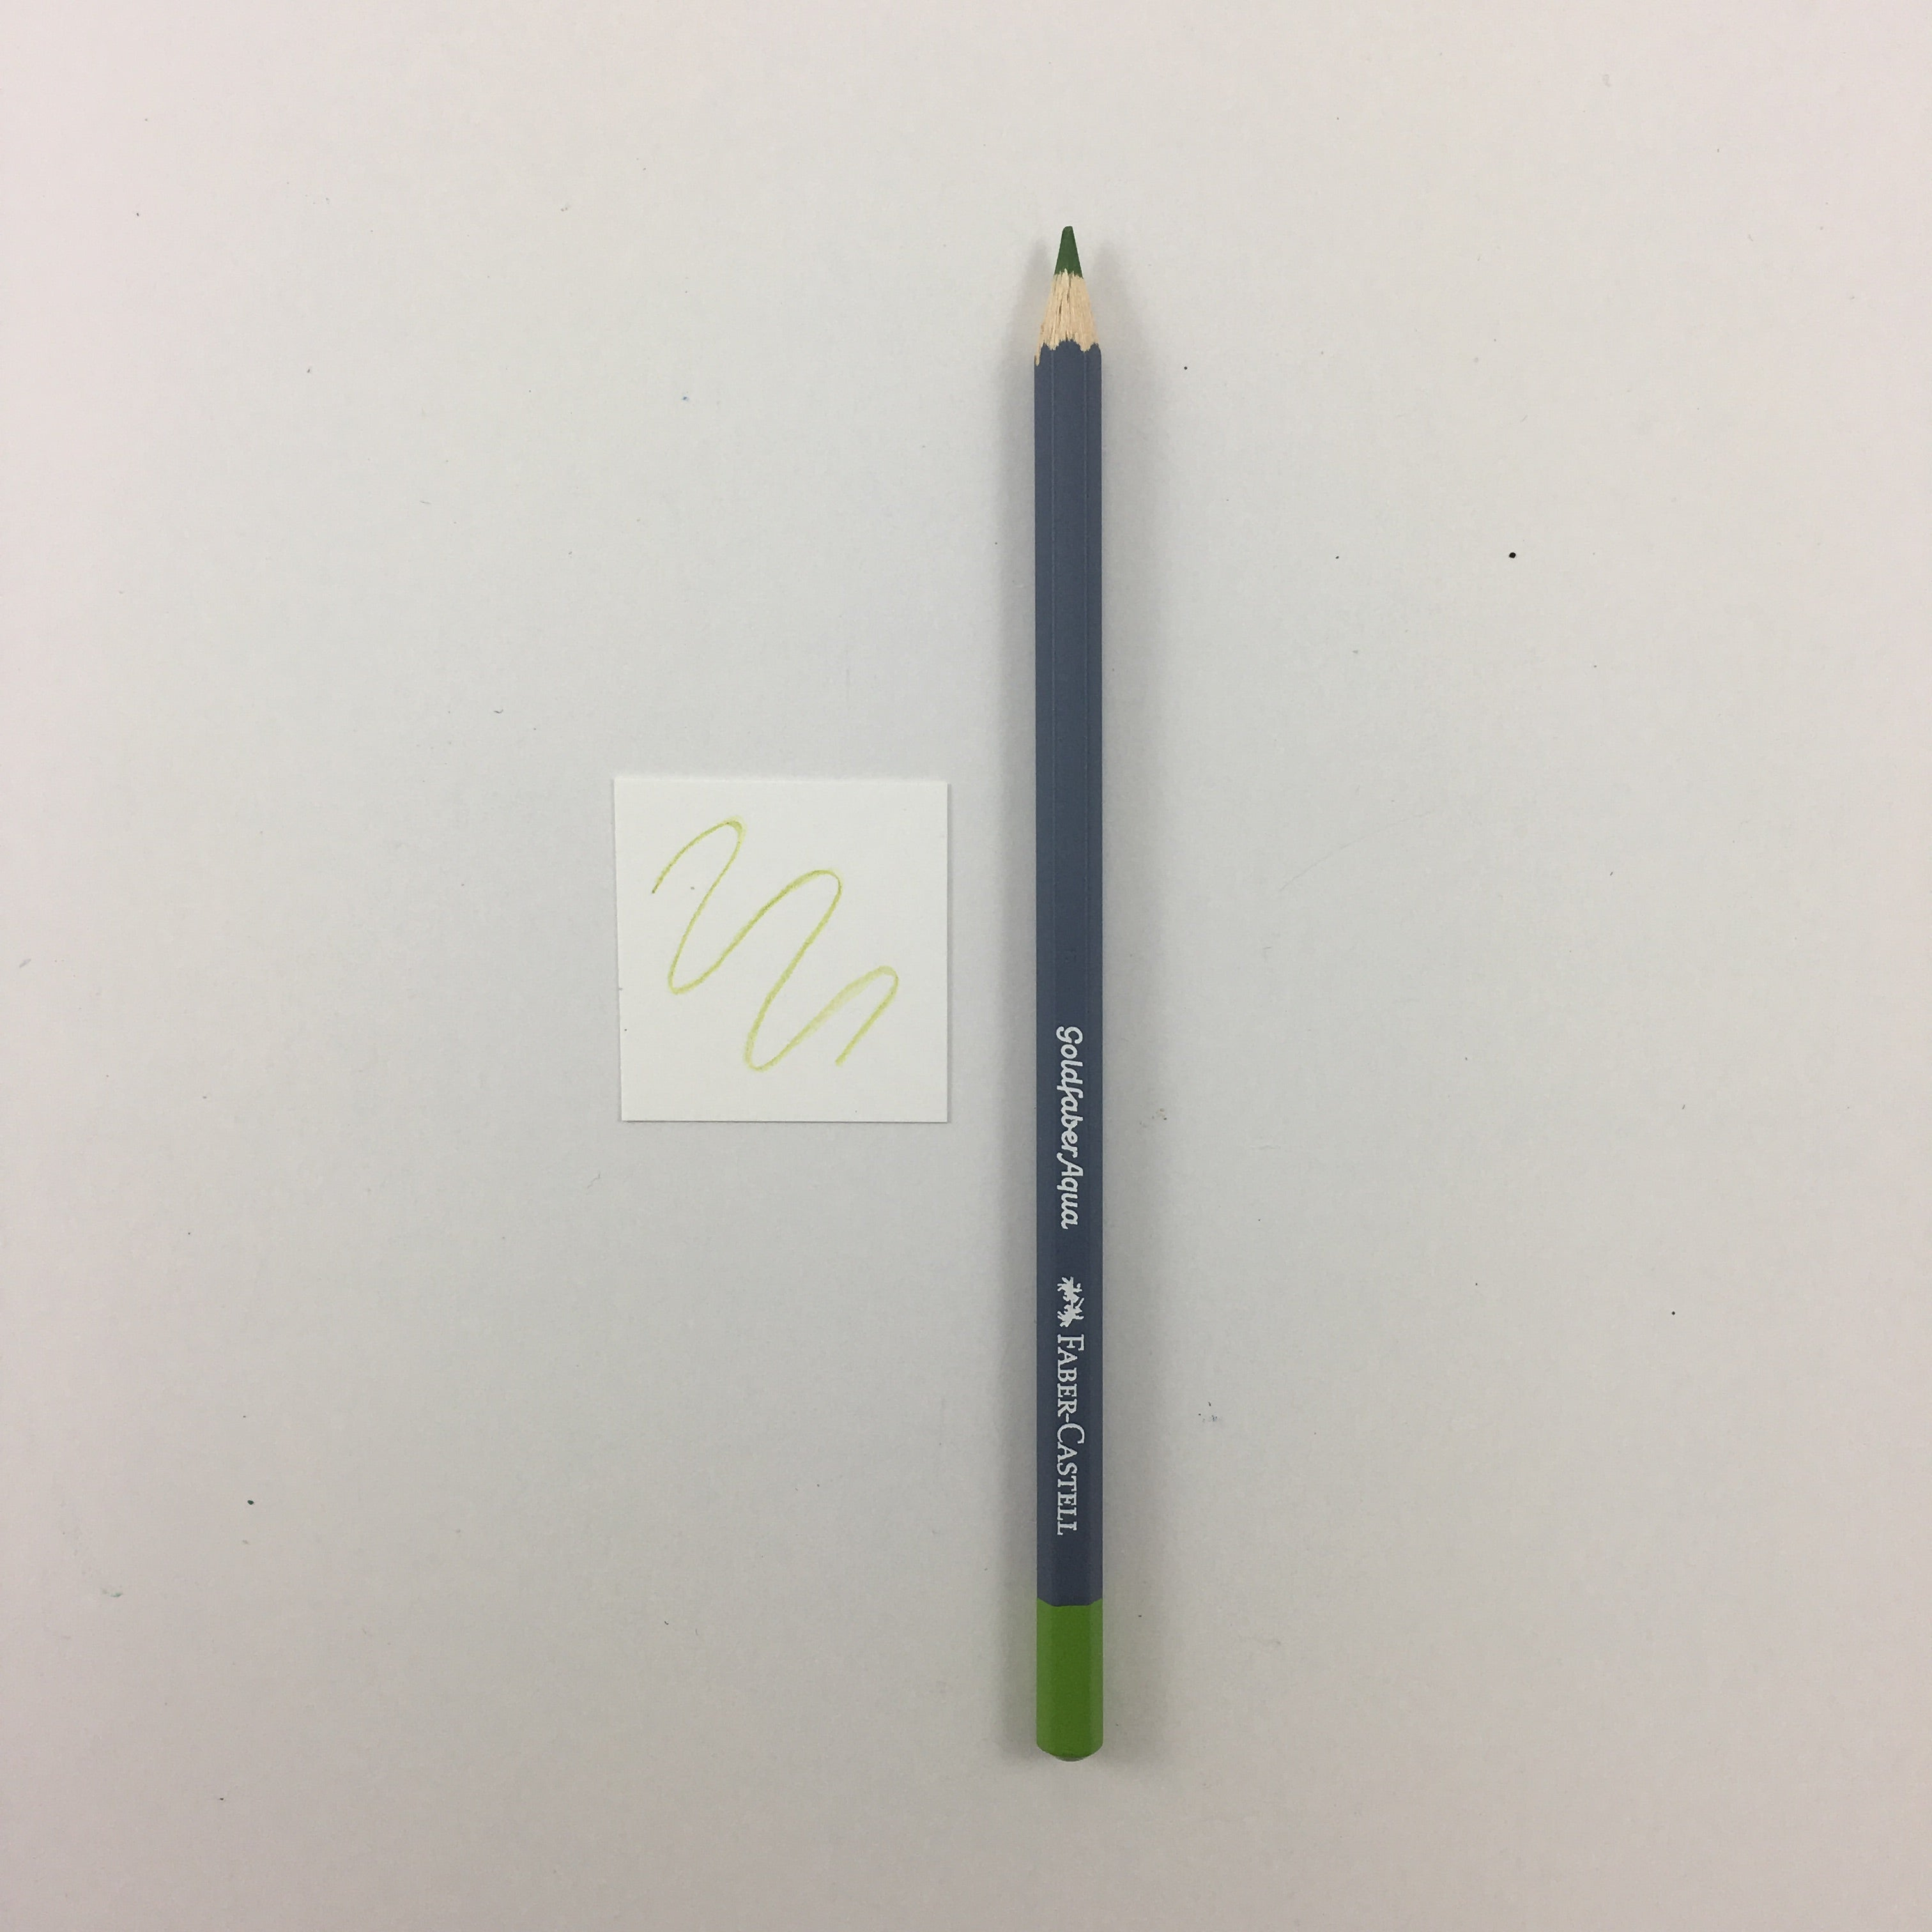 Faber-Castell Goldfaber Aqua Watercolor Pencils - Individuals - 170 - May Green by Faber-Castell - K. A. Artist Shop